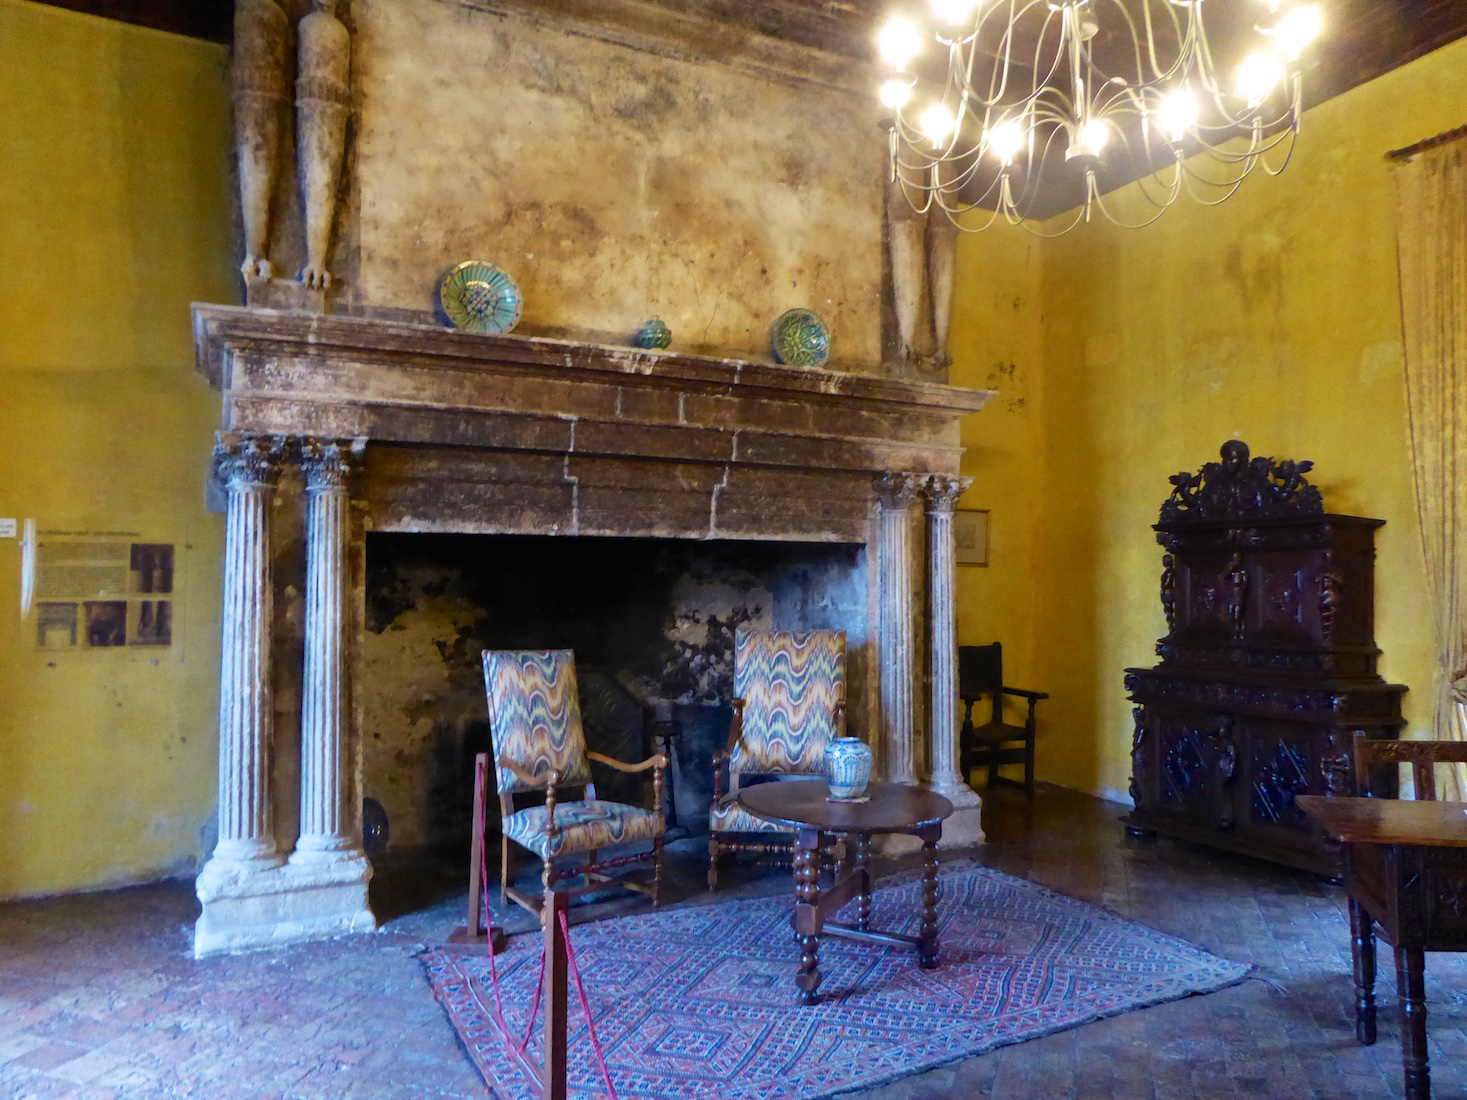 Fireplace in Reception room of the Lourmarin chateau, Loumrarin, Luberon, Vaucluse, Provence, France